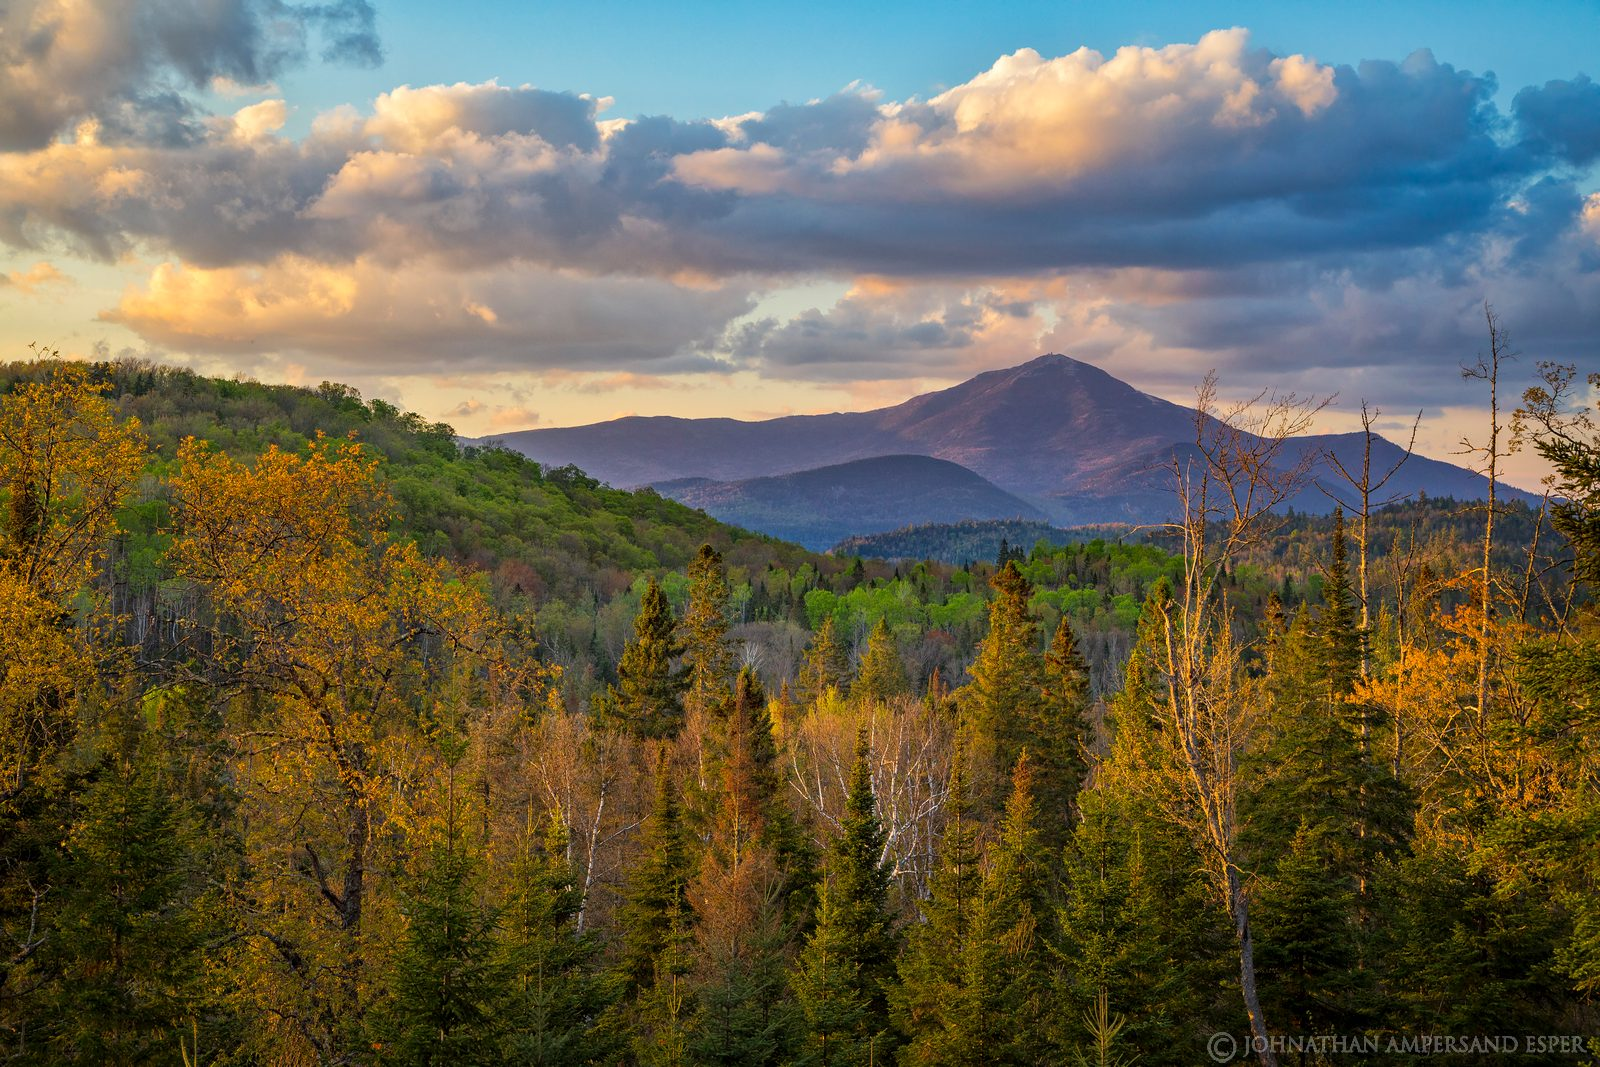 Whiteface Mt,Whiteface Mountain,Whiteface,River Road,River Road Lodge,May,2019,spring,mountain,